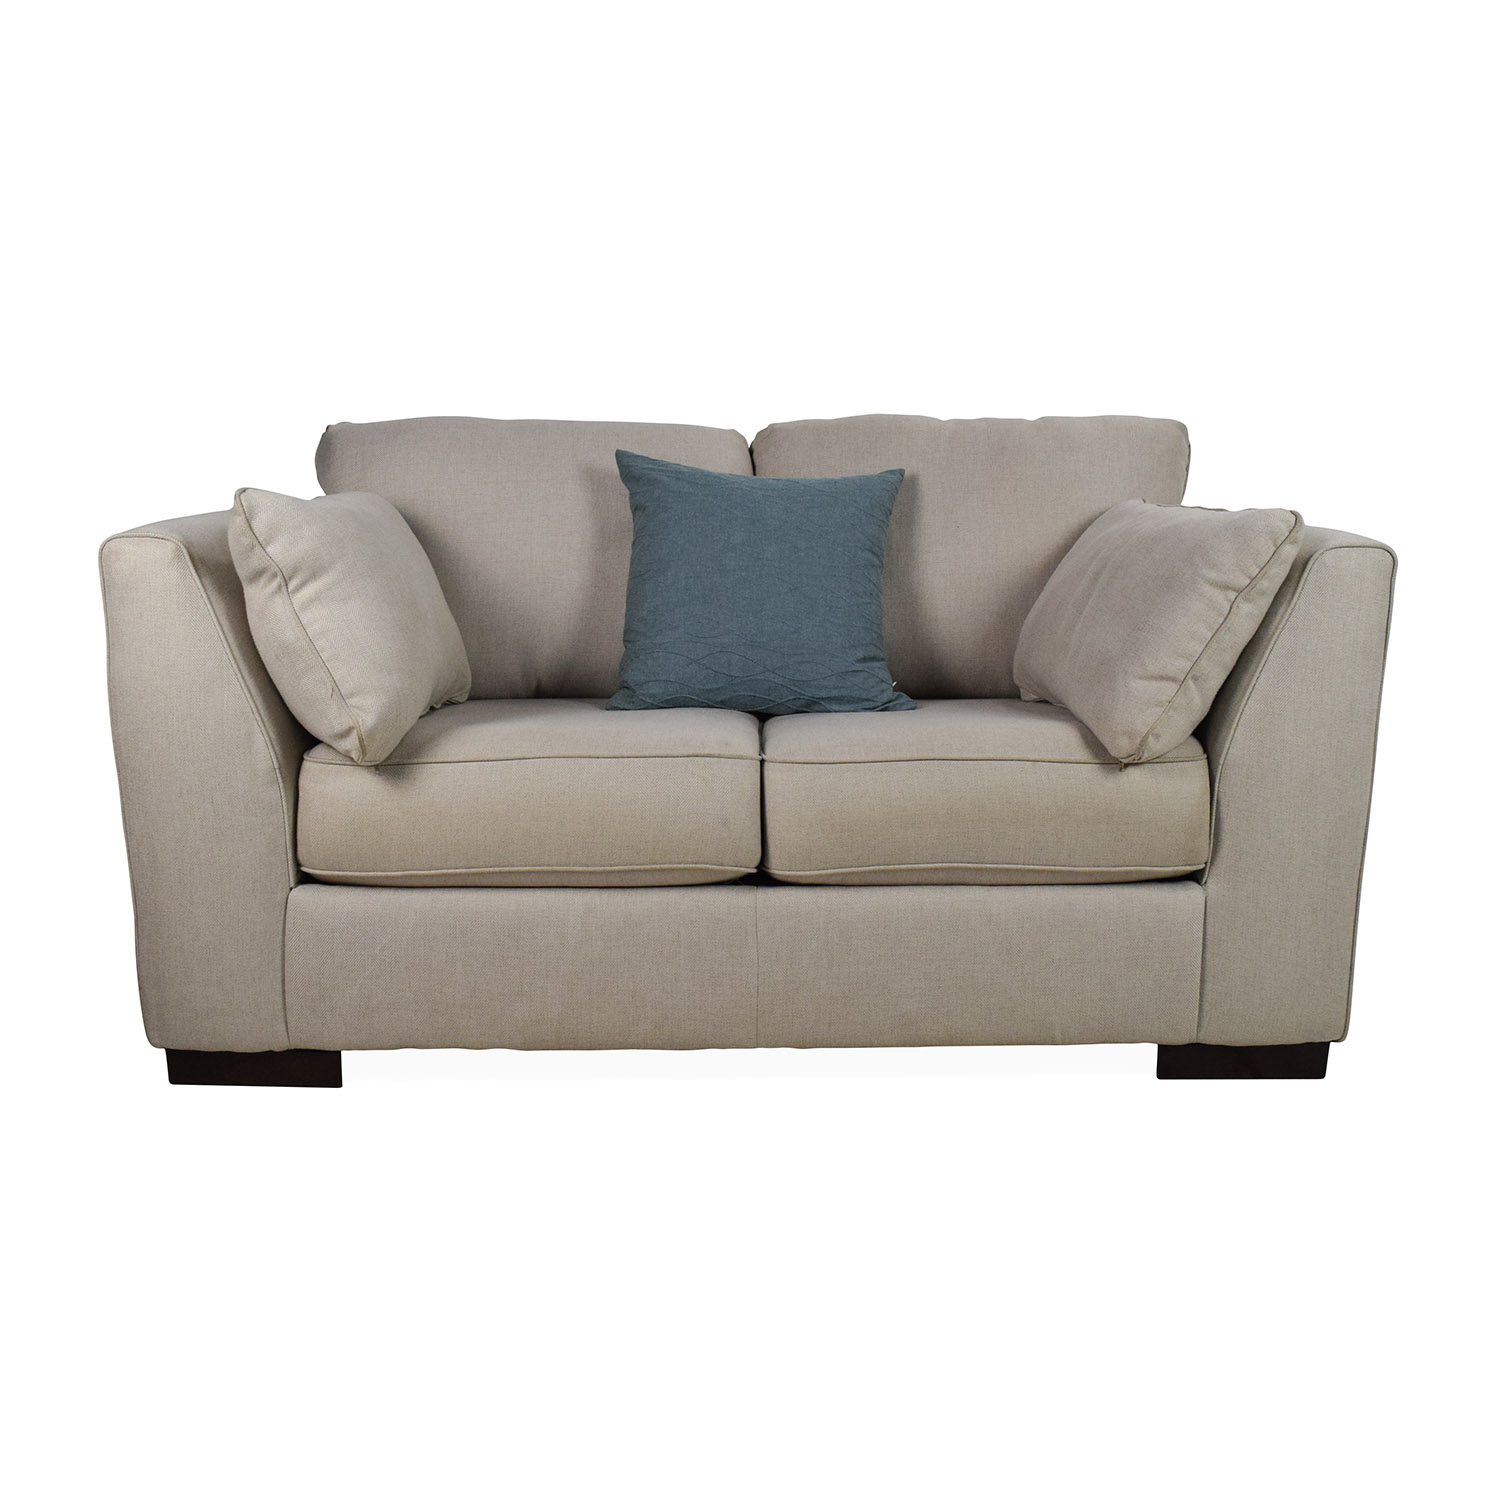 75% OFF Ashley Furniture Ashley Furniture Pierin Loveseat Sofas